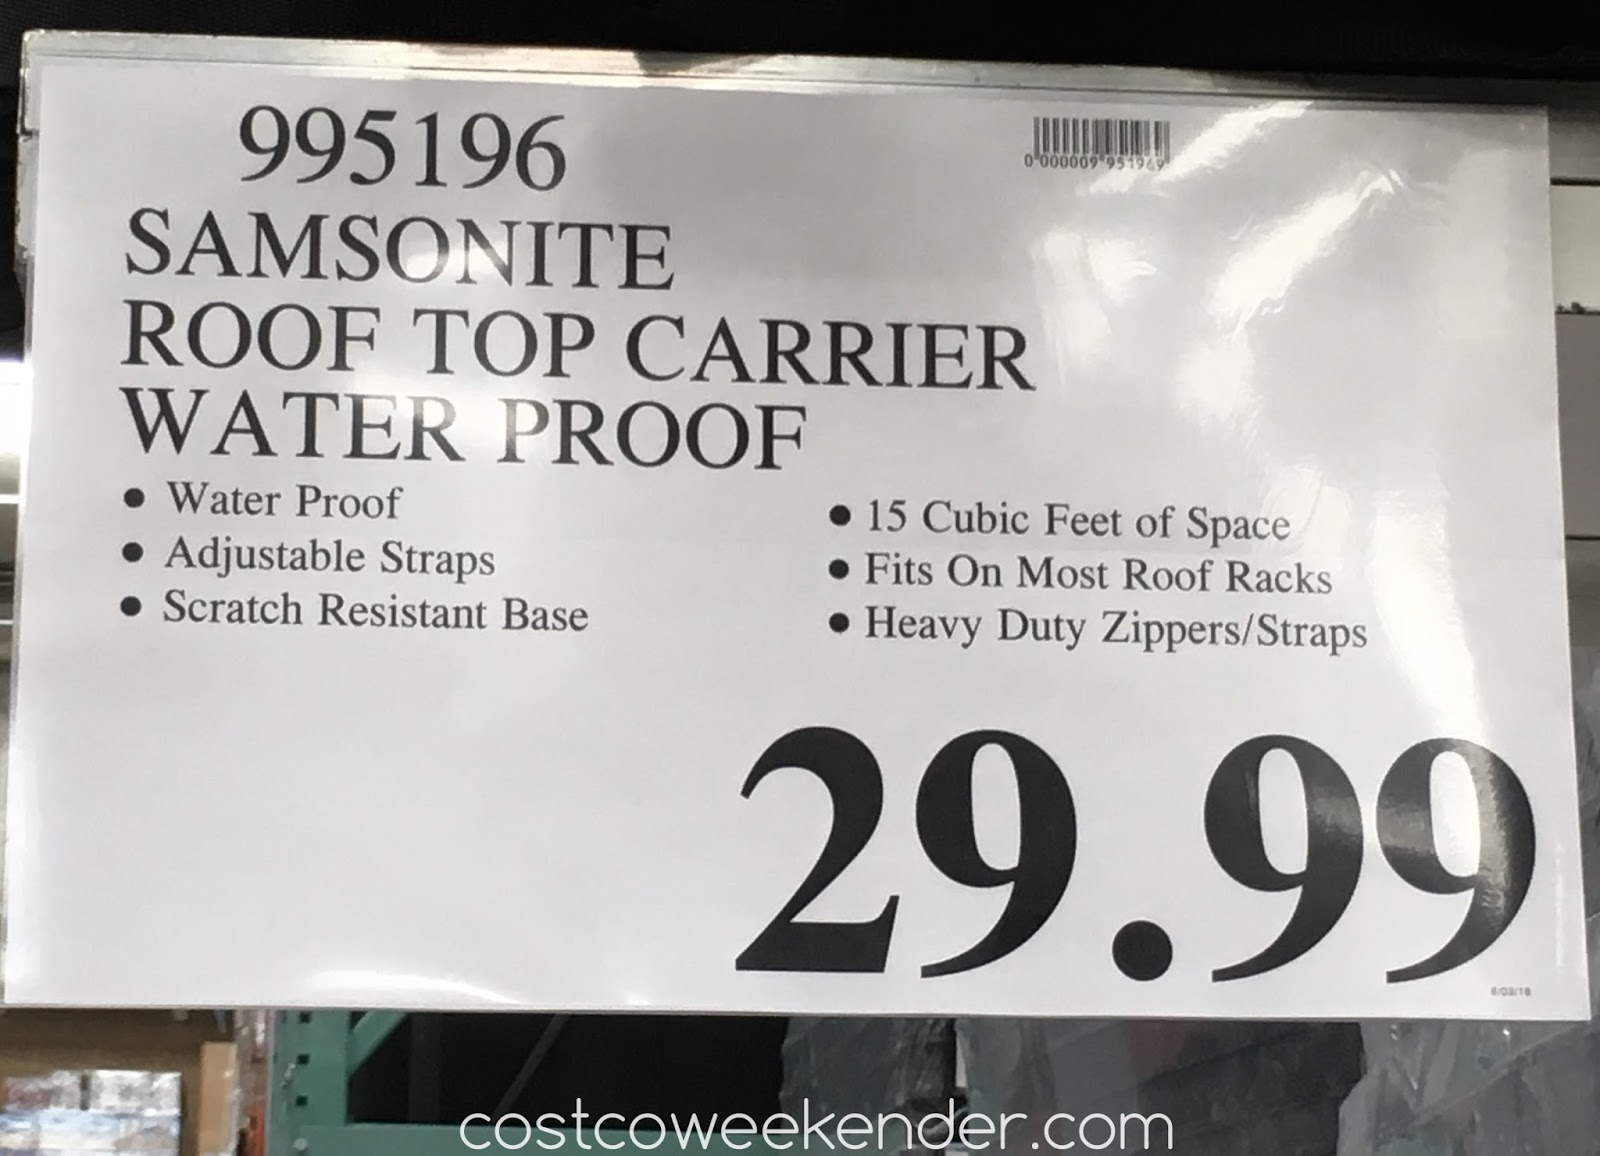 Samsonite Rooftop Cargo Carrier Costco Weekender